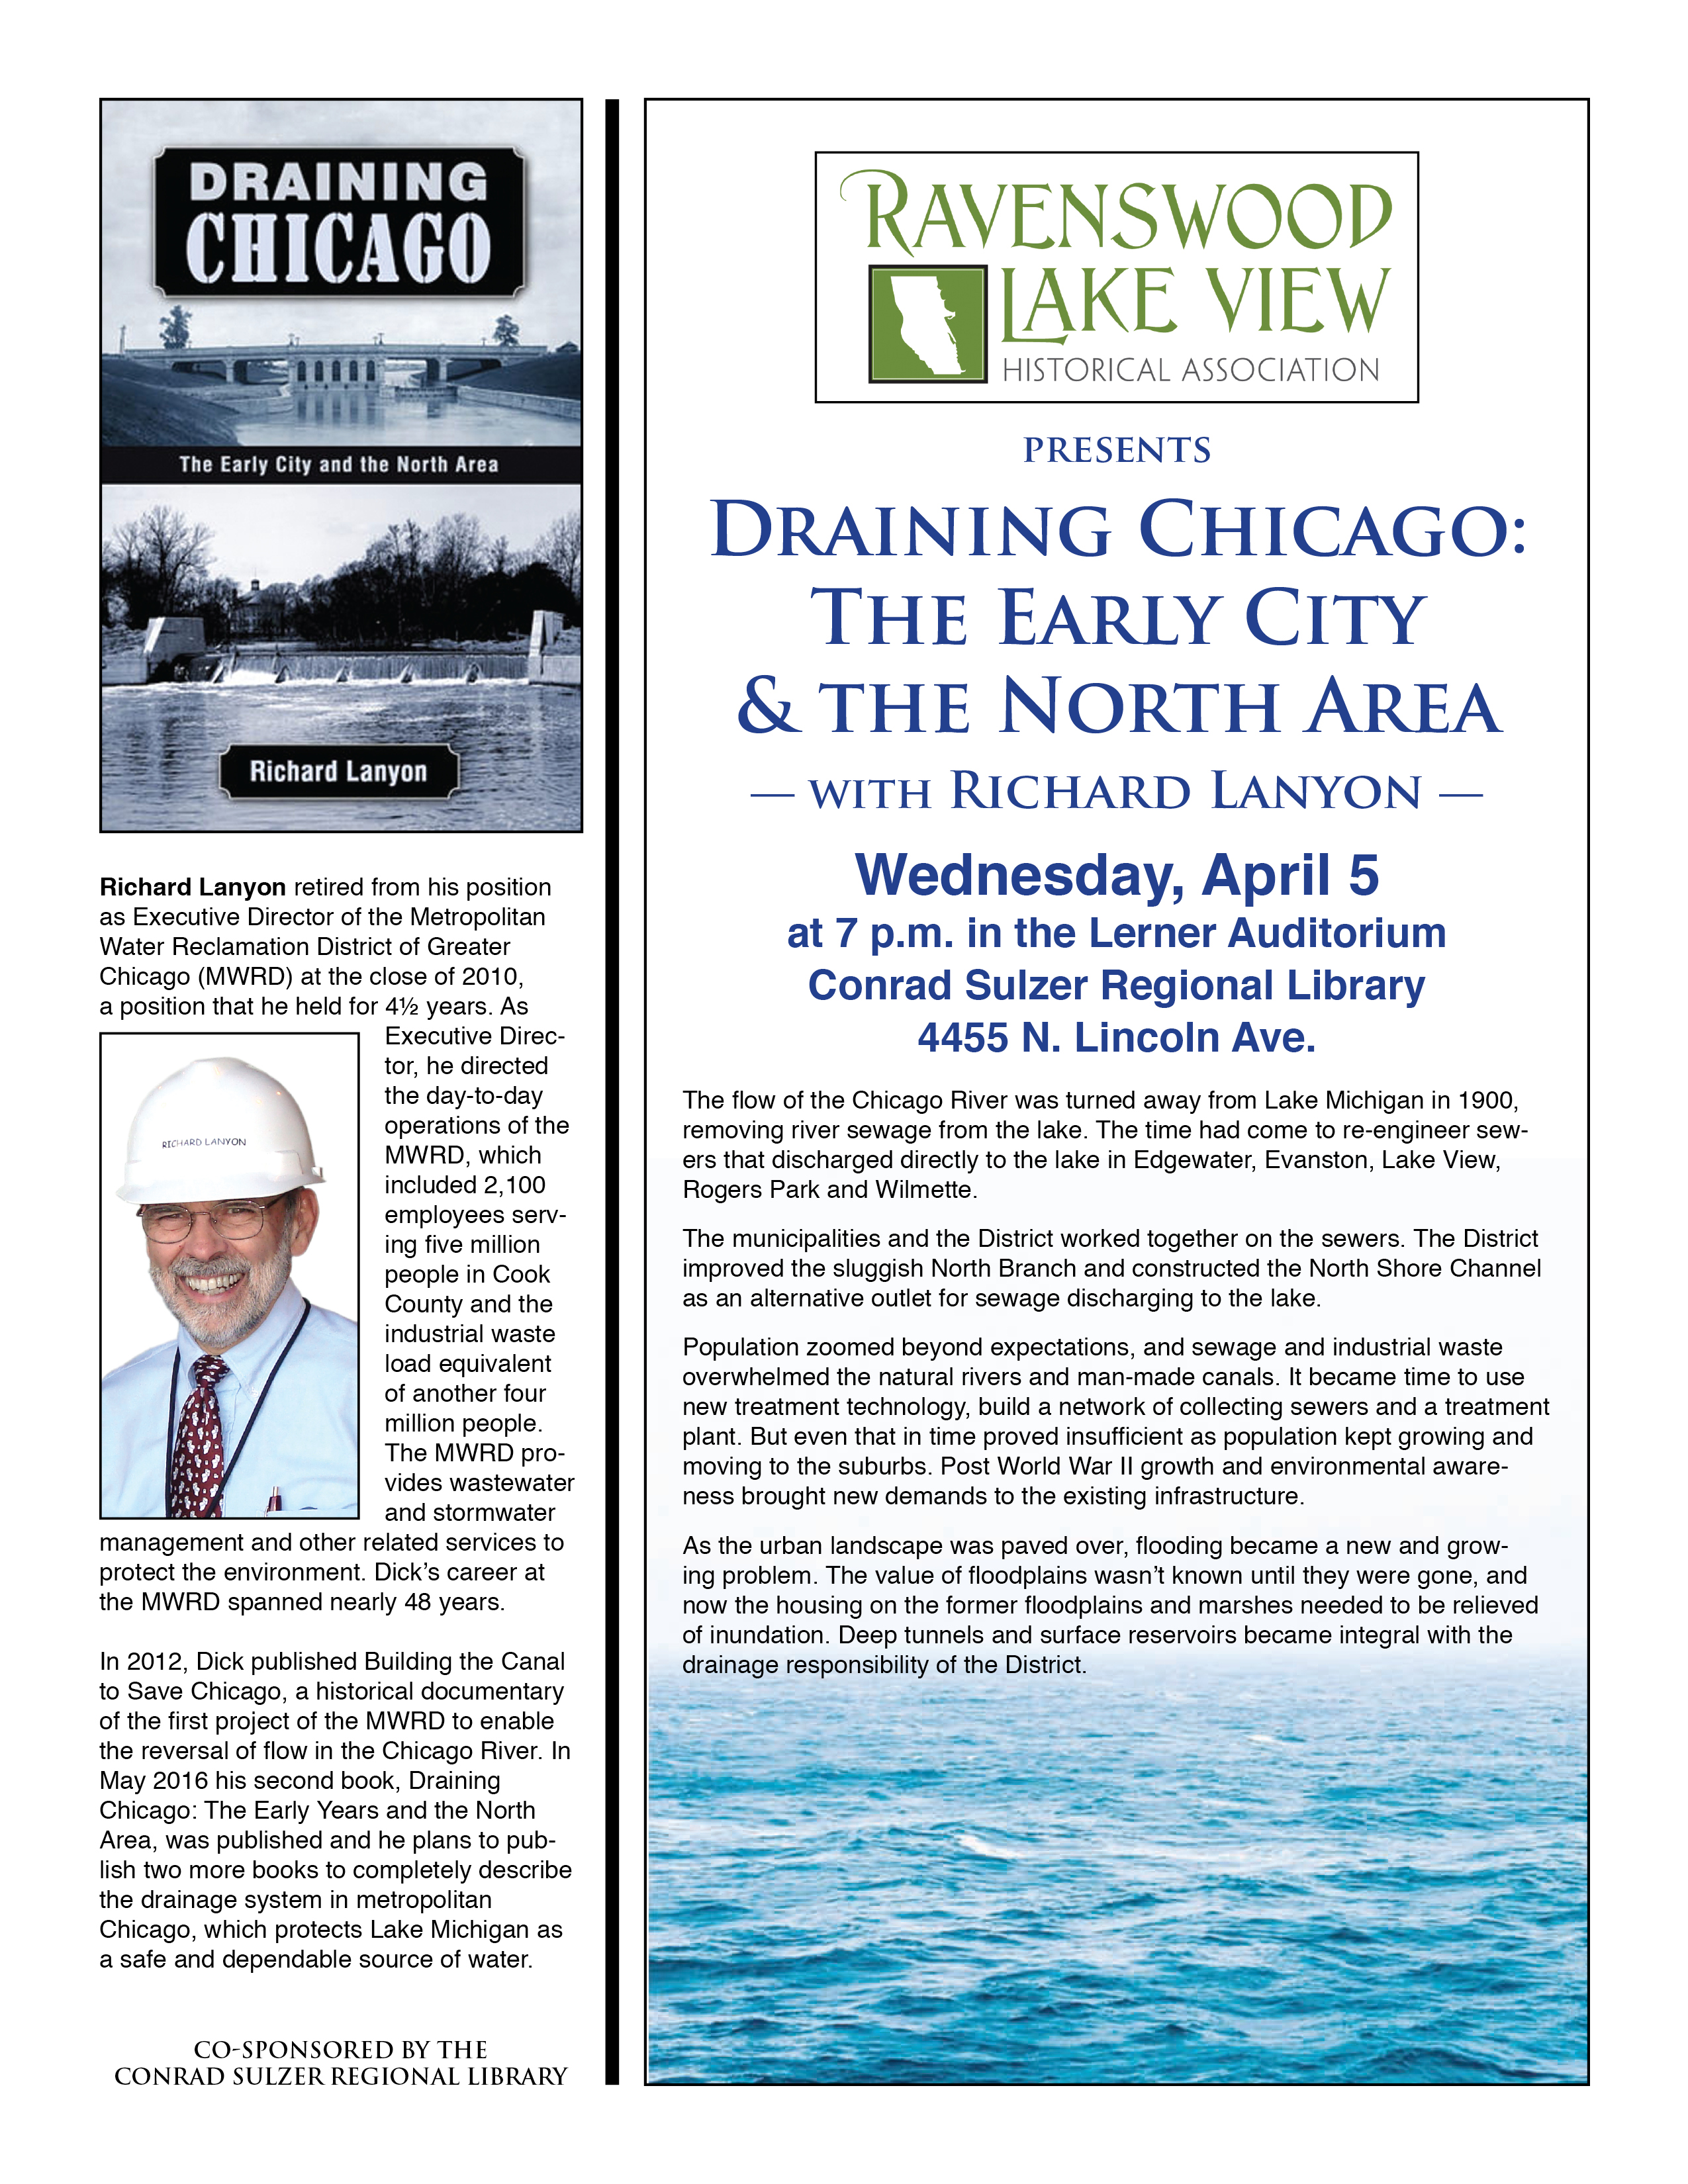 Draining Chicago, Wednesday, April 5, 7:00 p.m., Conrad Sulzer Regional Library, 4455 N. Lincoln Ave.